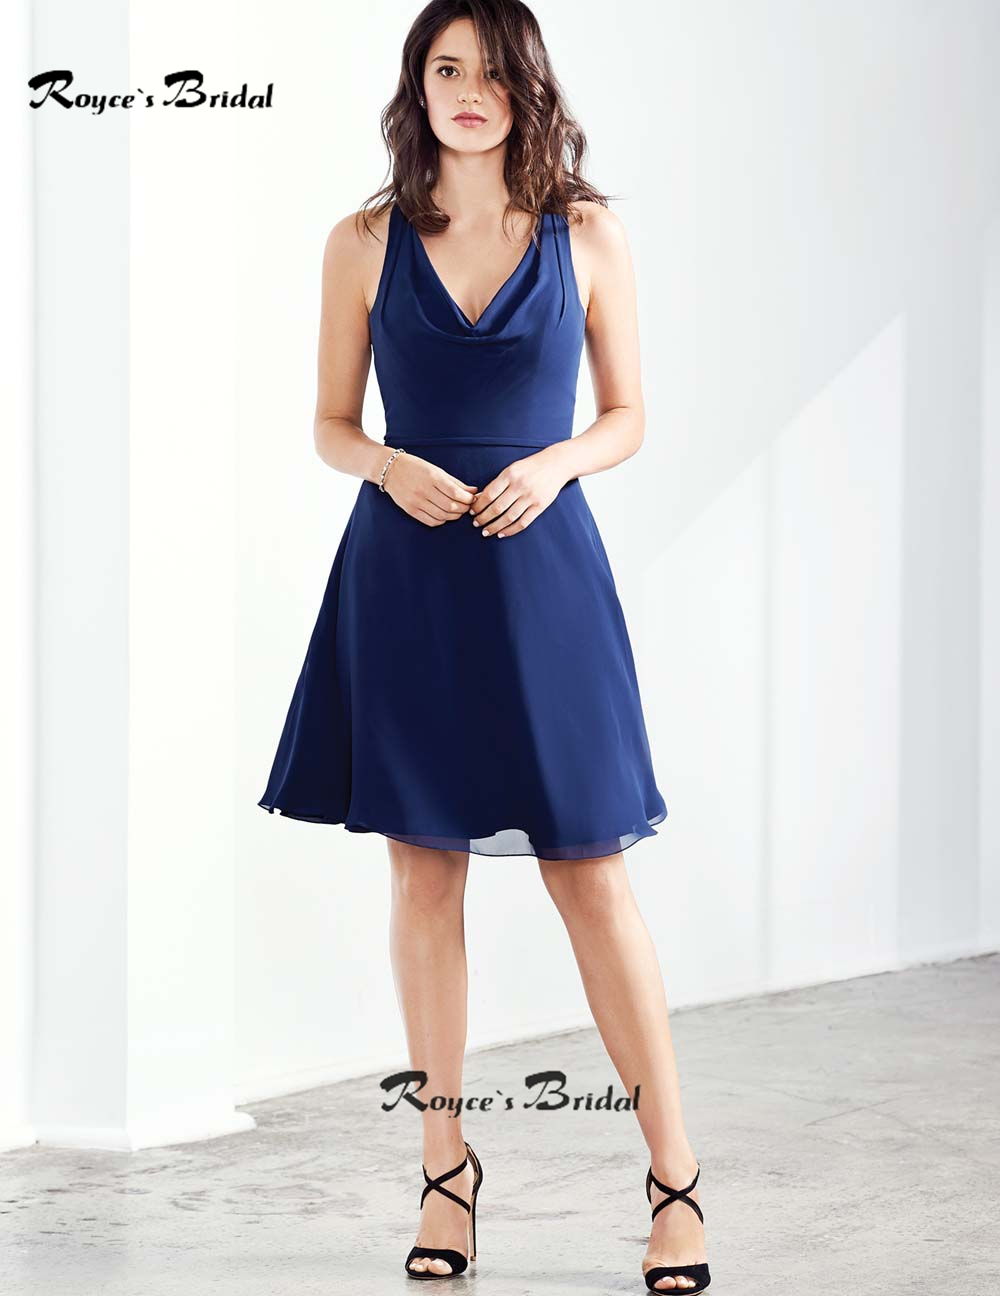 new style navy blue bridesmaid dress mini v neck chiffon short wedding party dresses for women robe demoiselle dhonneur